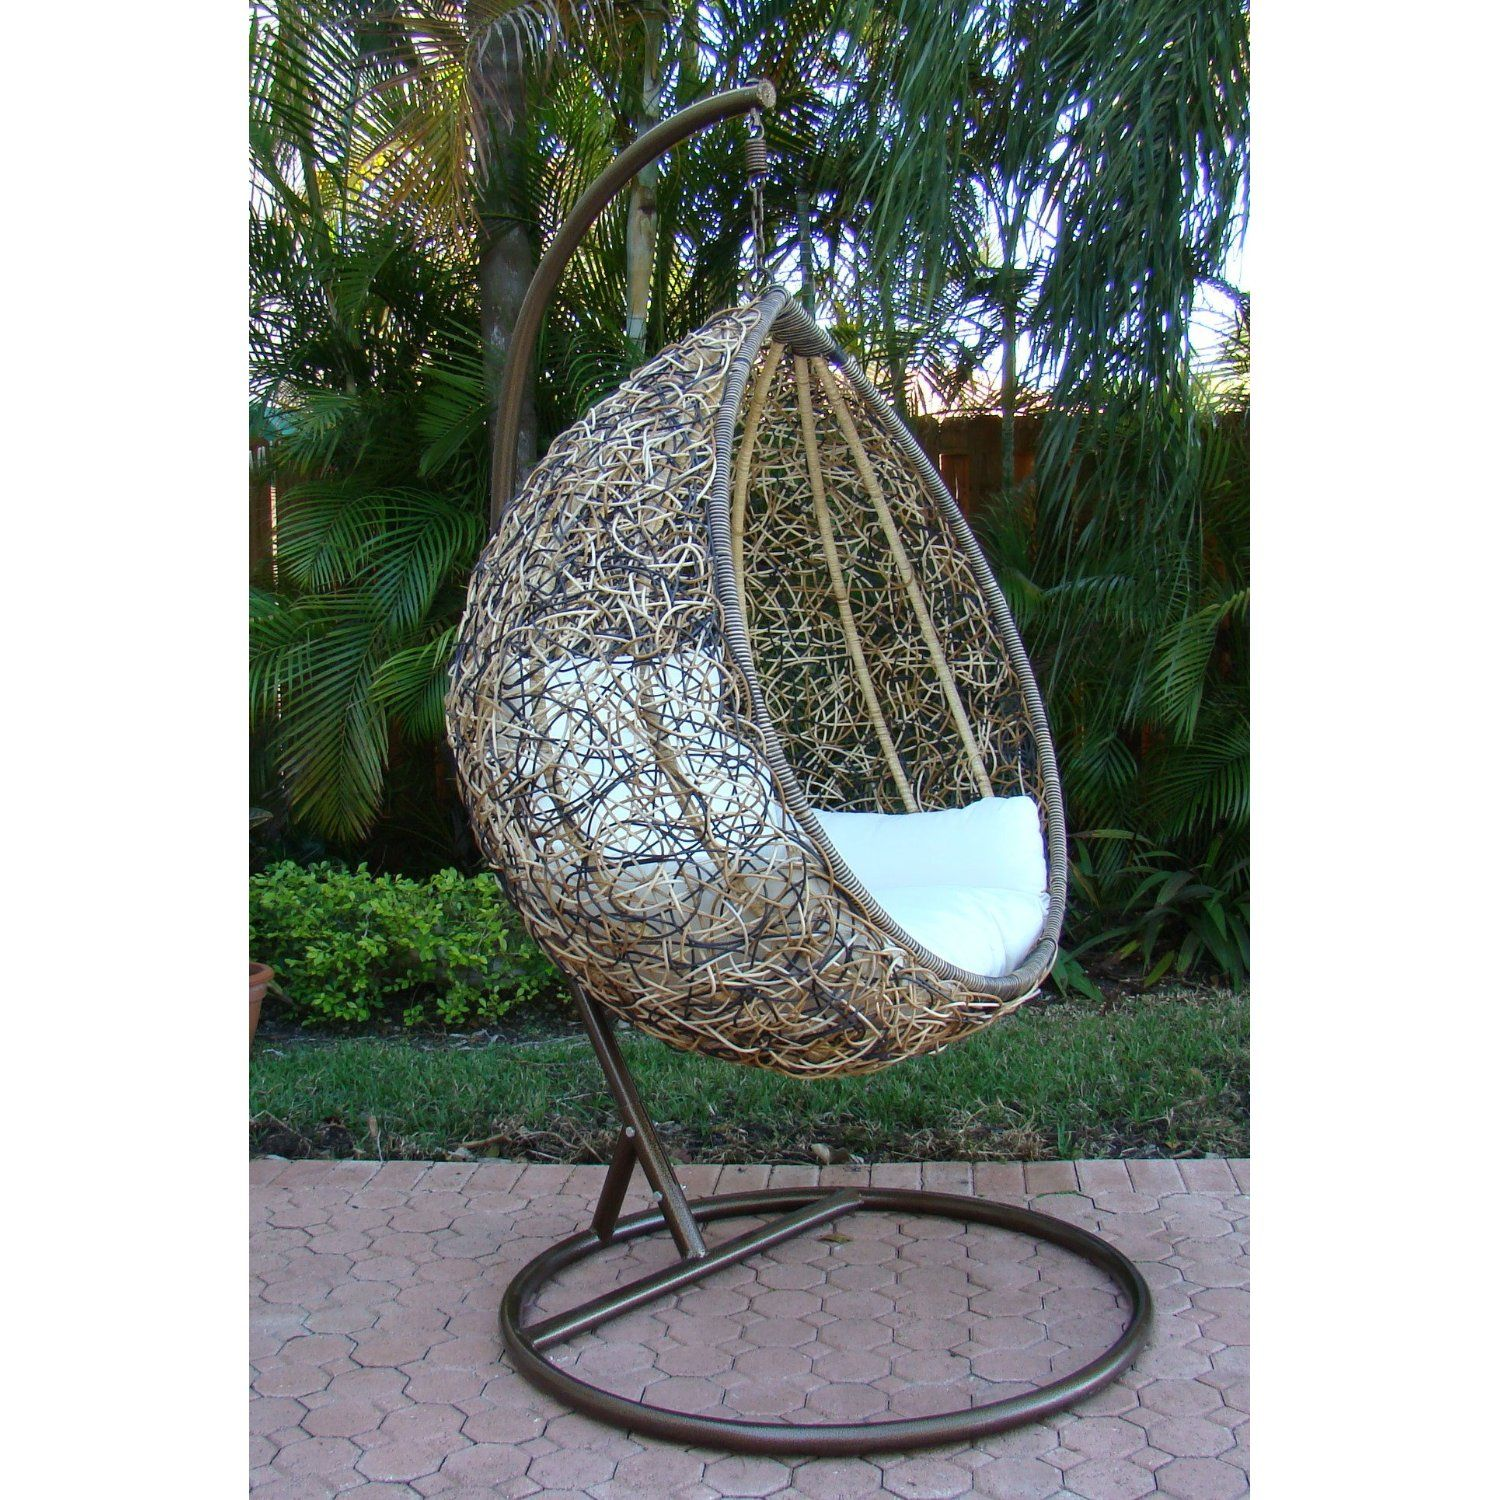 Outdoor Wicker Hammock Chair Potty With Tray Swing Trying To Figure Out How I Could Justify This Expense My Accountant D